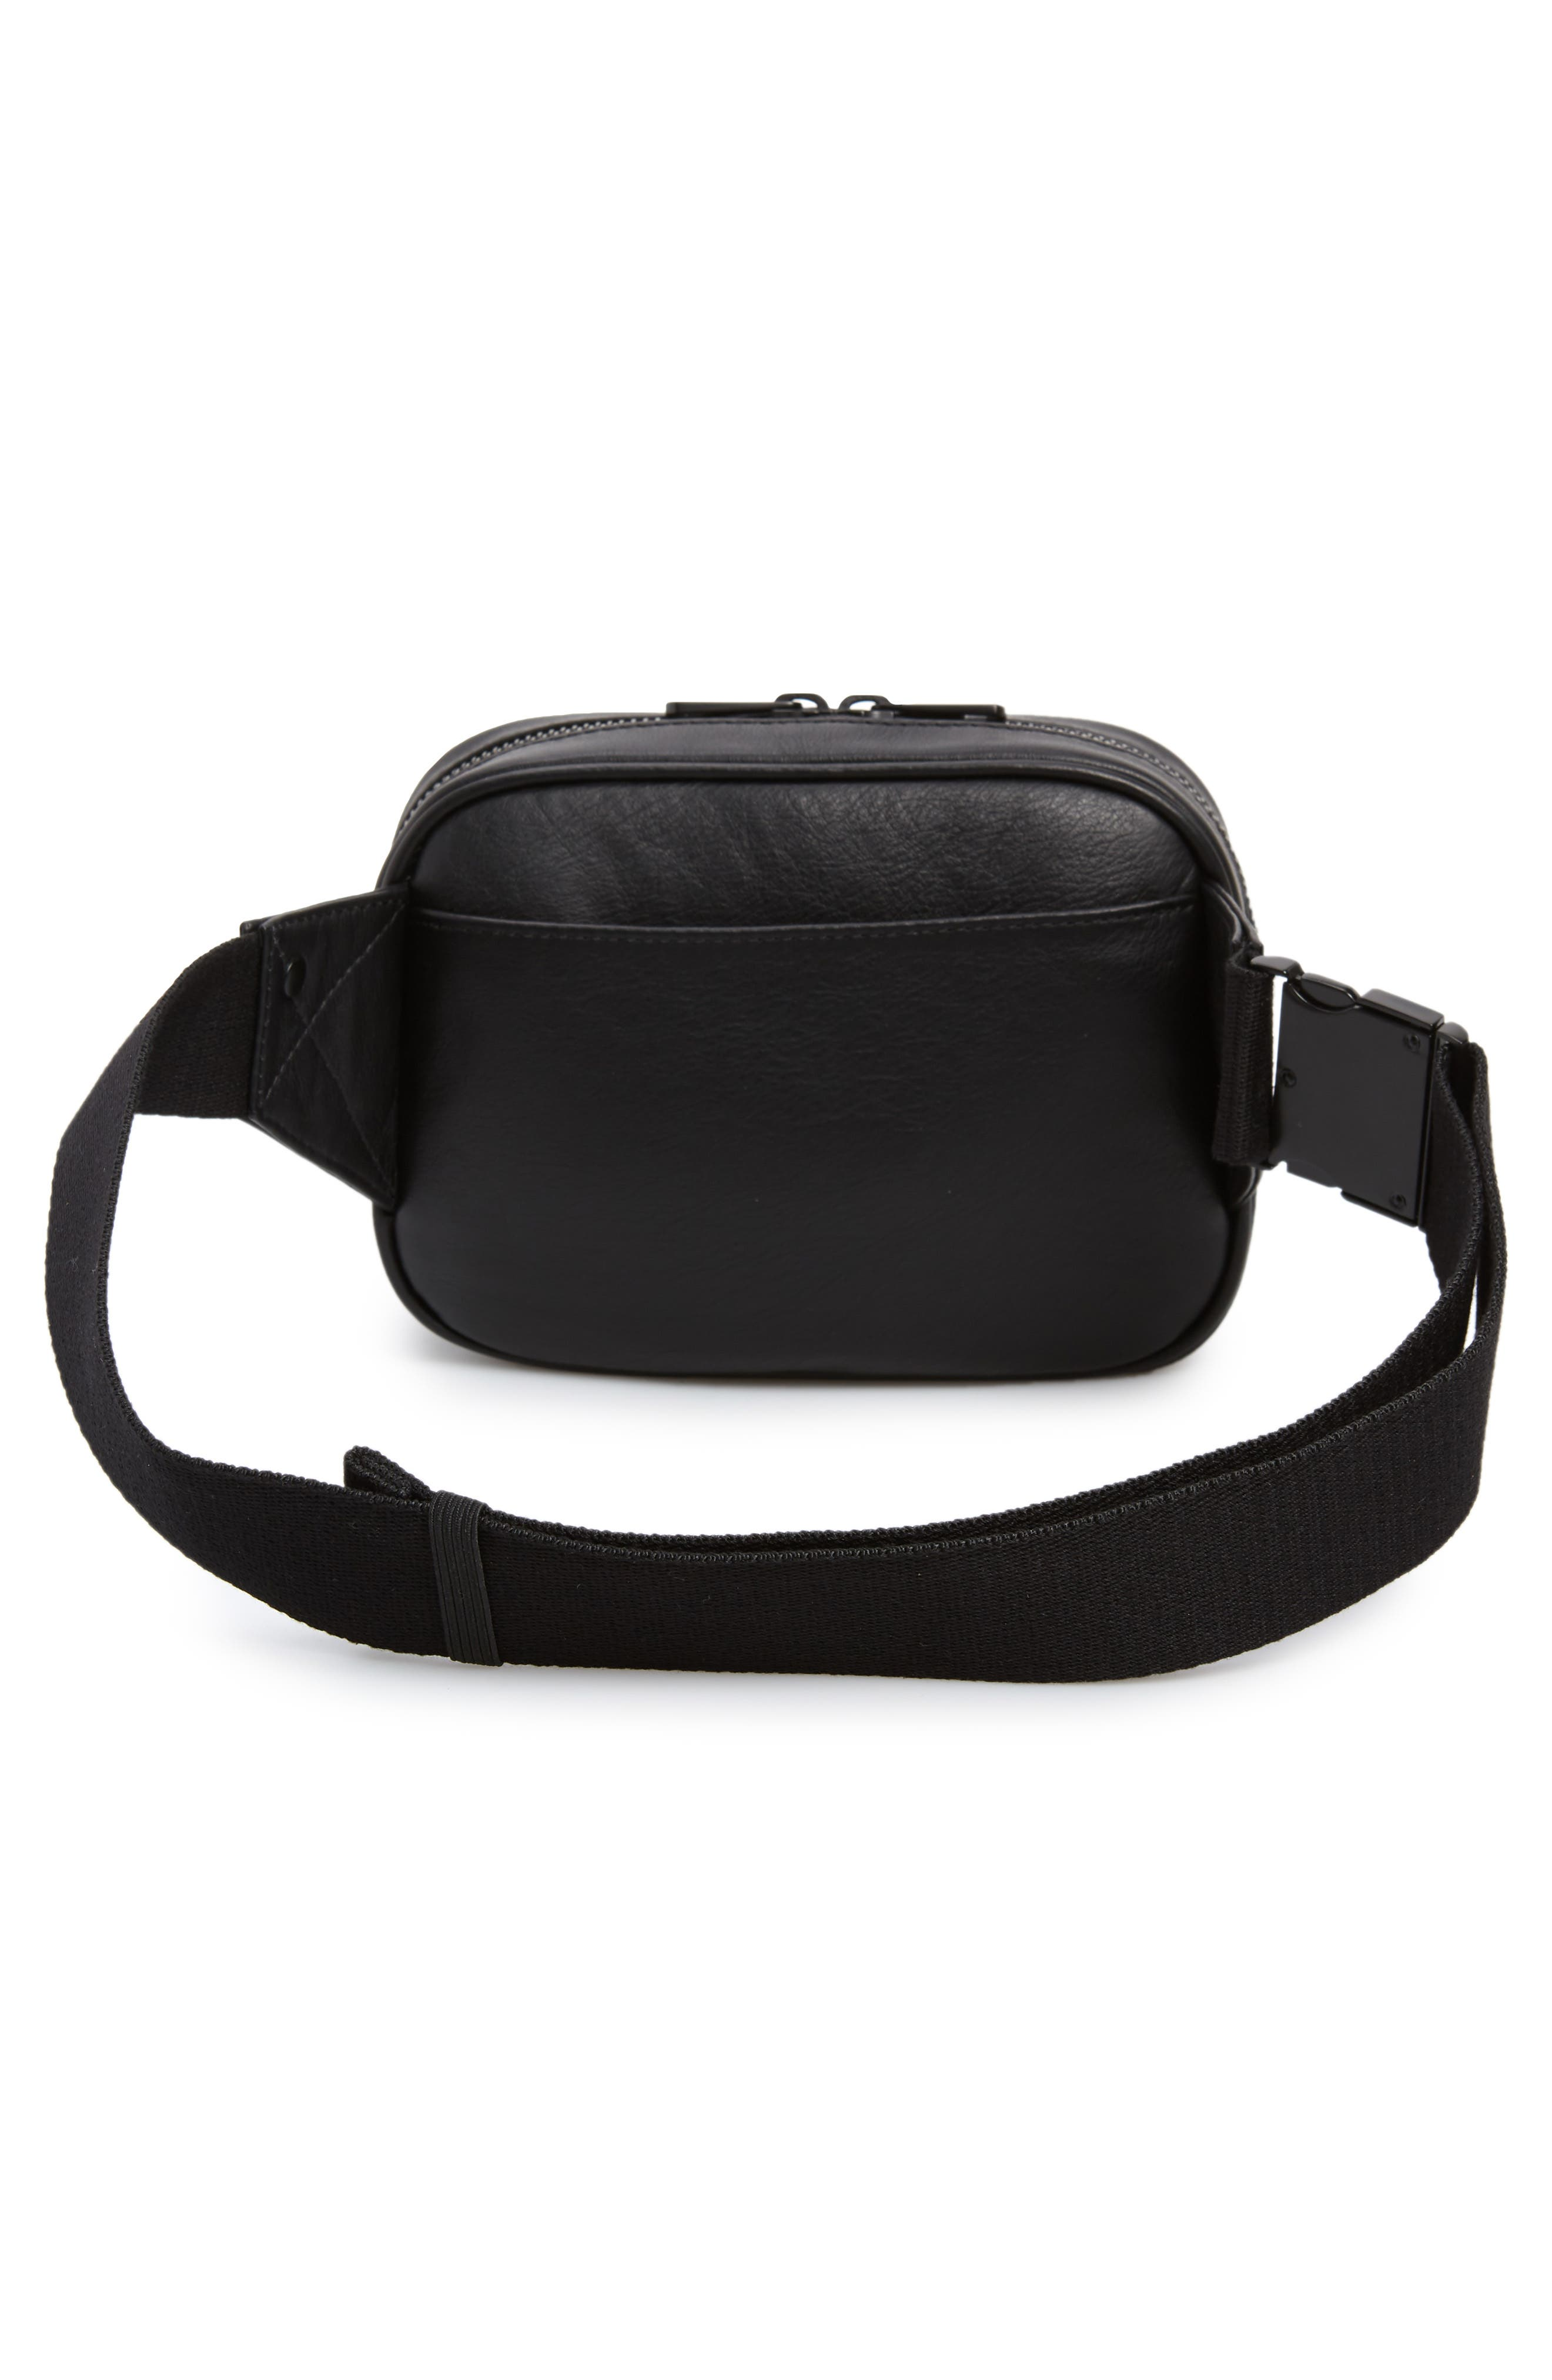 Homecrest Crosby Leather Belt Bag,                             Alternate thumbnail 4, color,                             BLACK